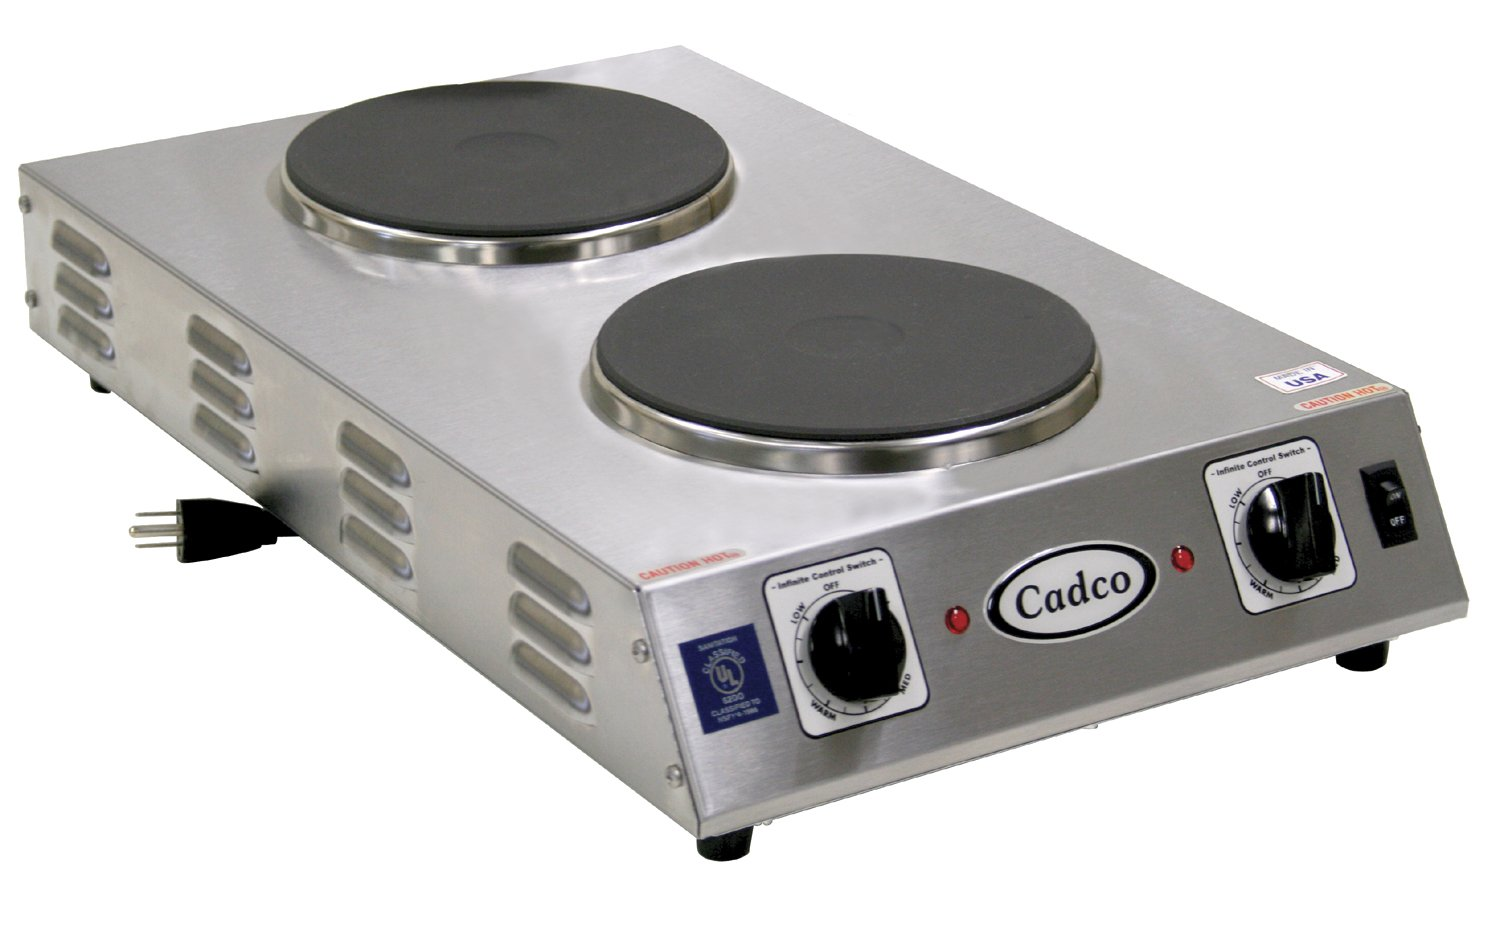 Cadco CDR-2CFB Space Saver Double Cast Iron 120-Volt Hot Plate